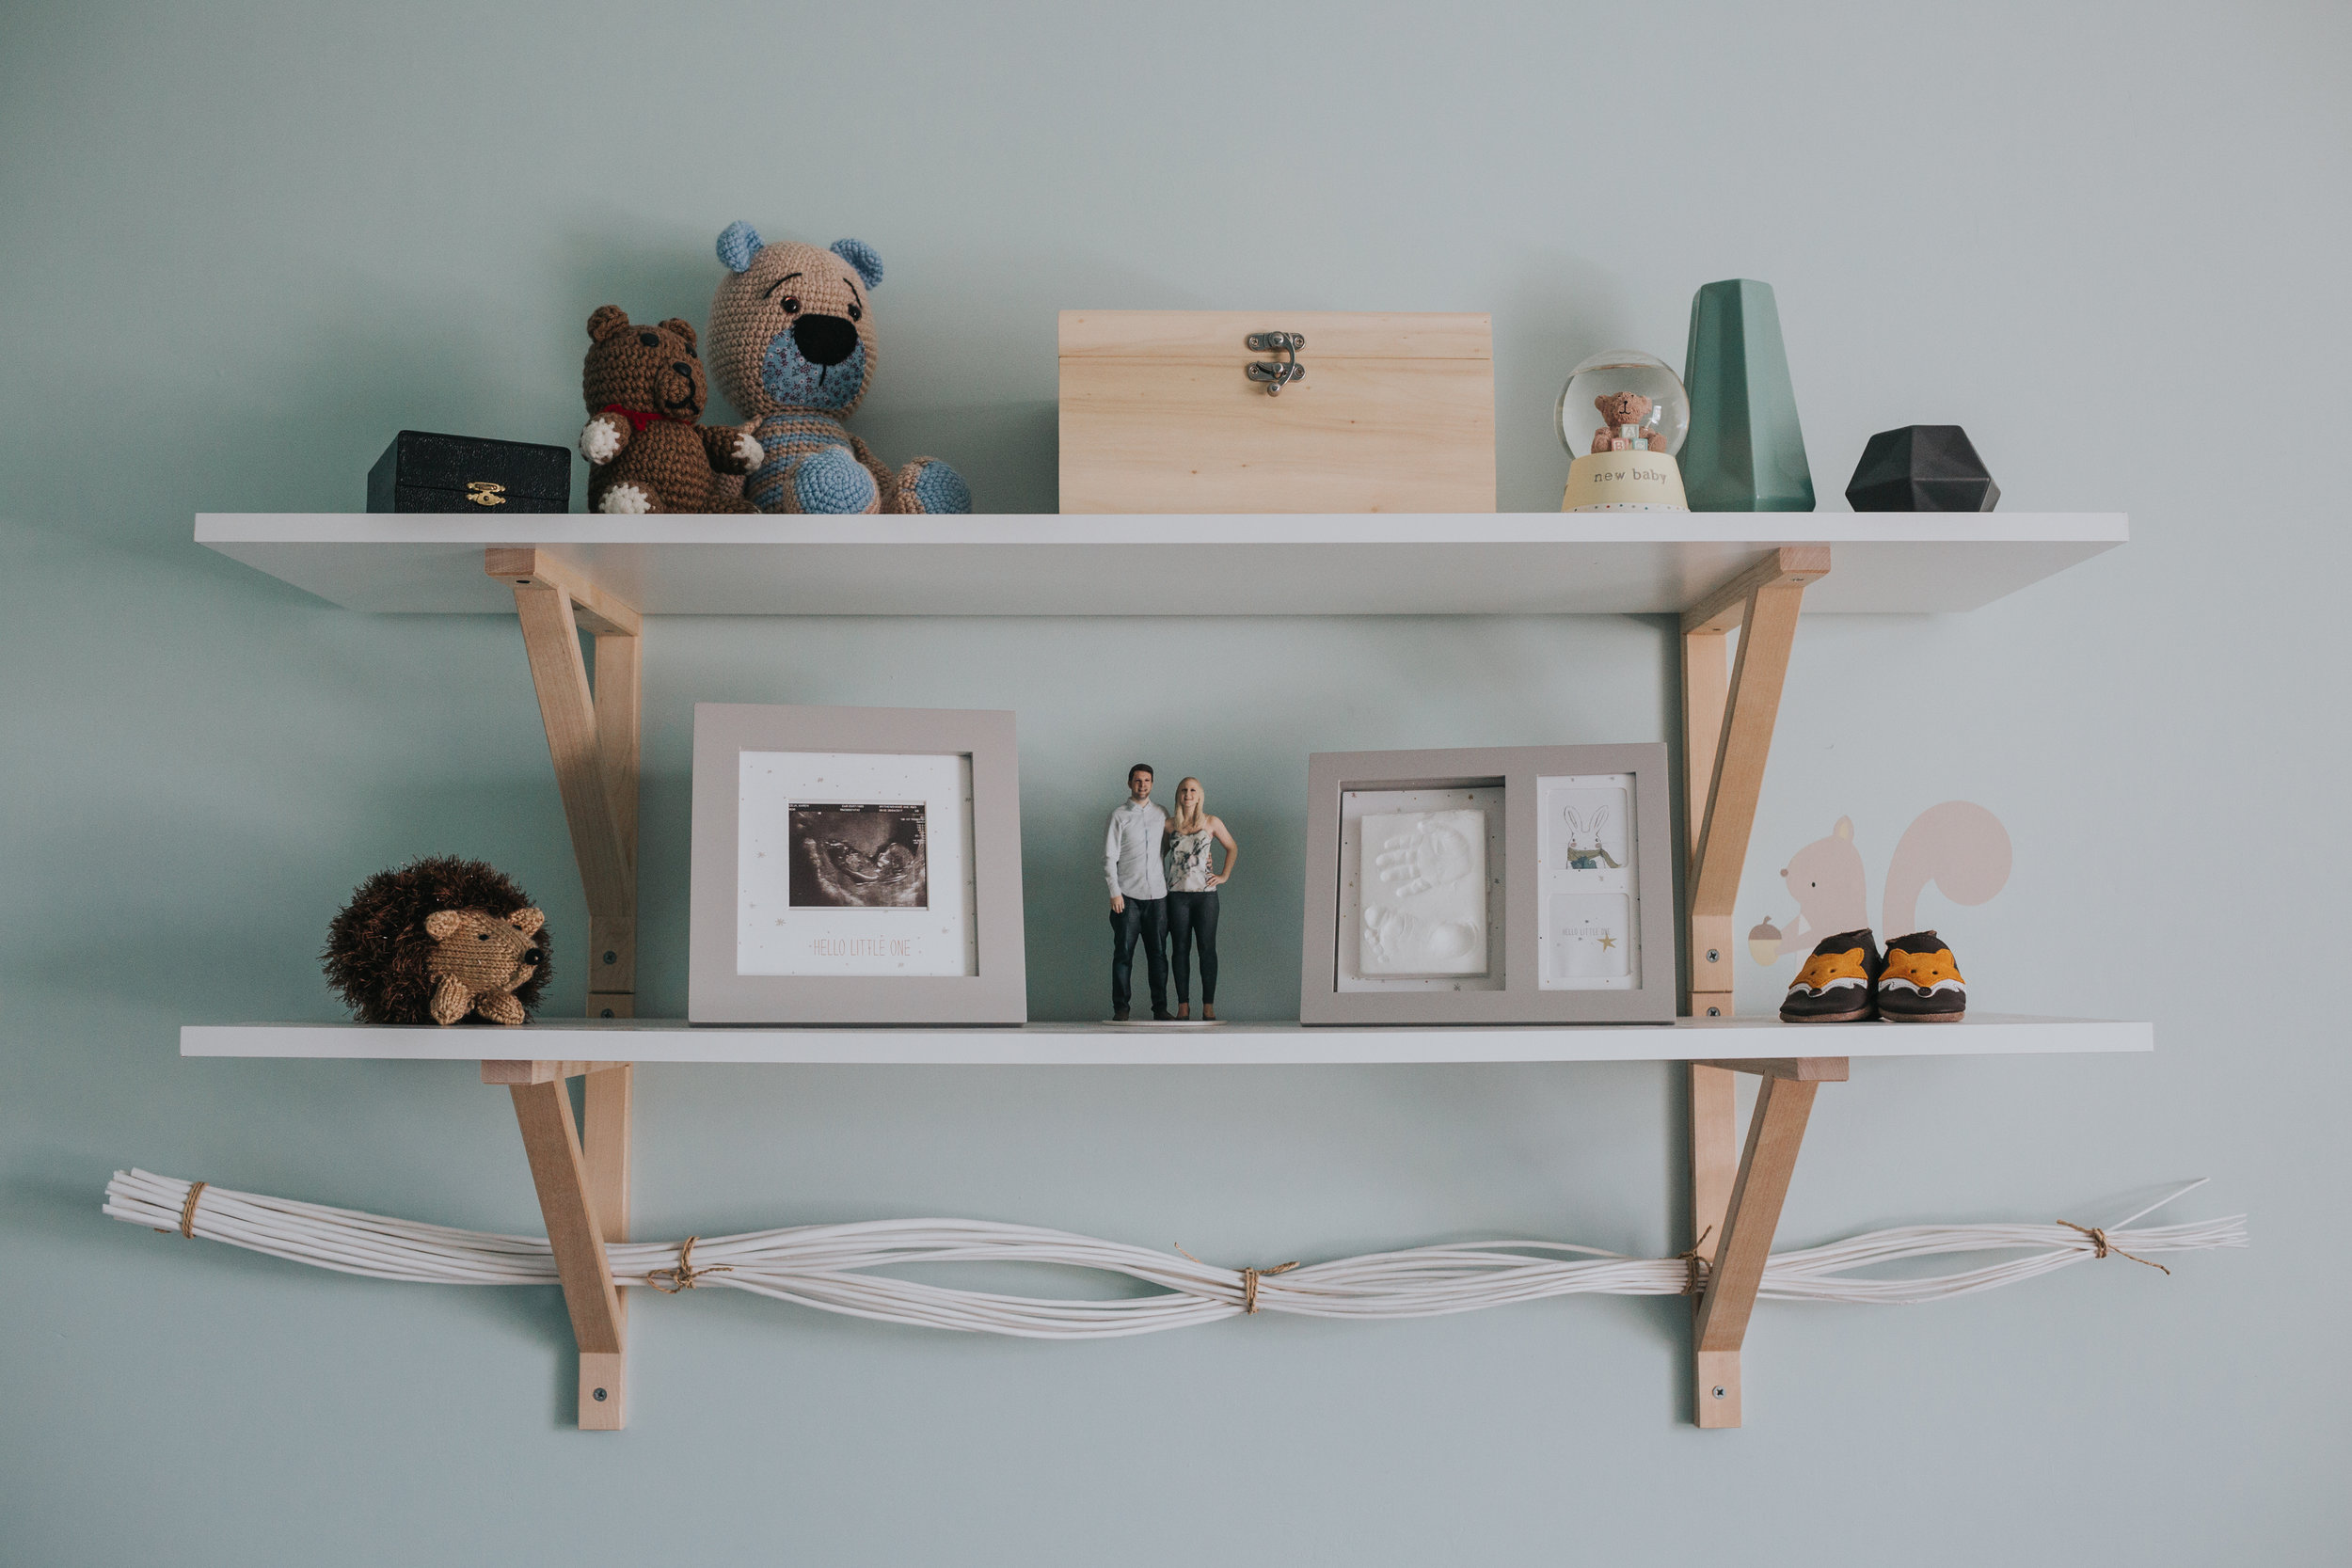 Shelves in babies room with photos and toys.